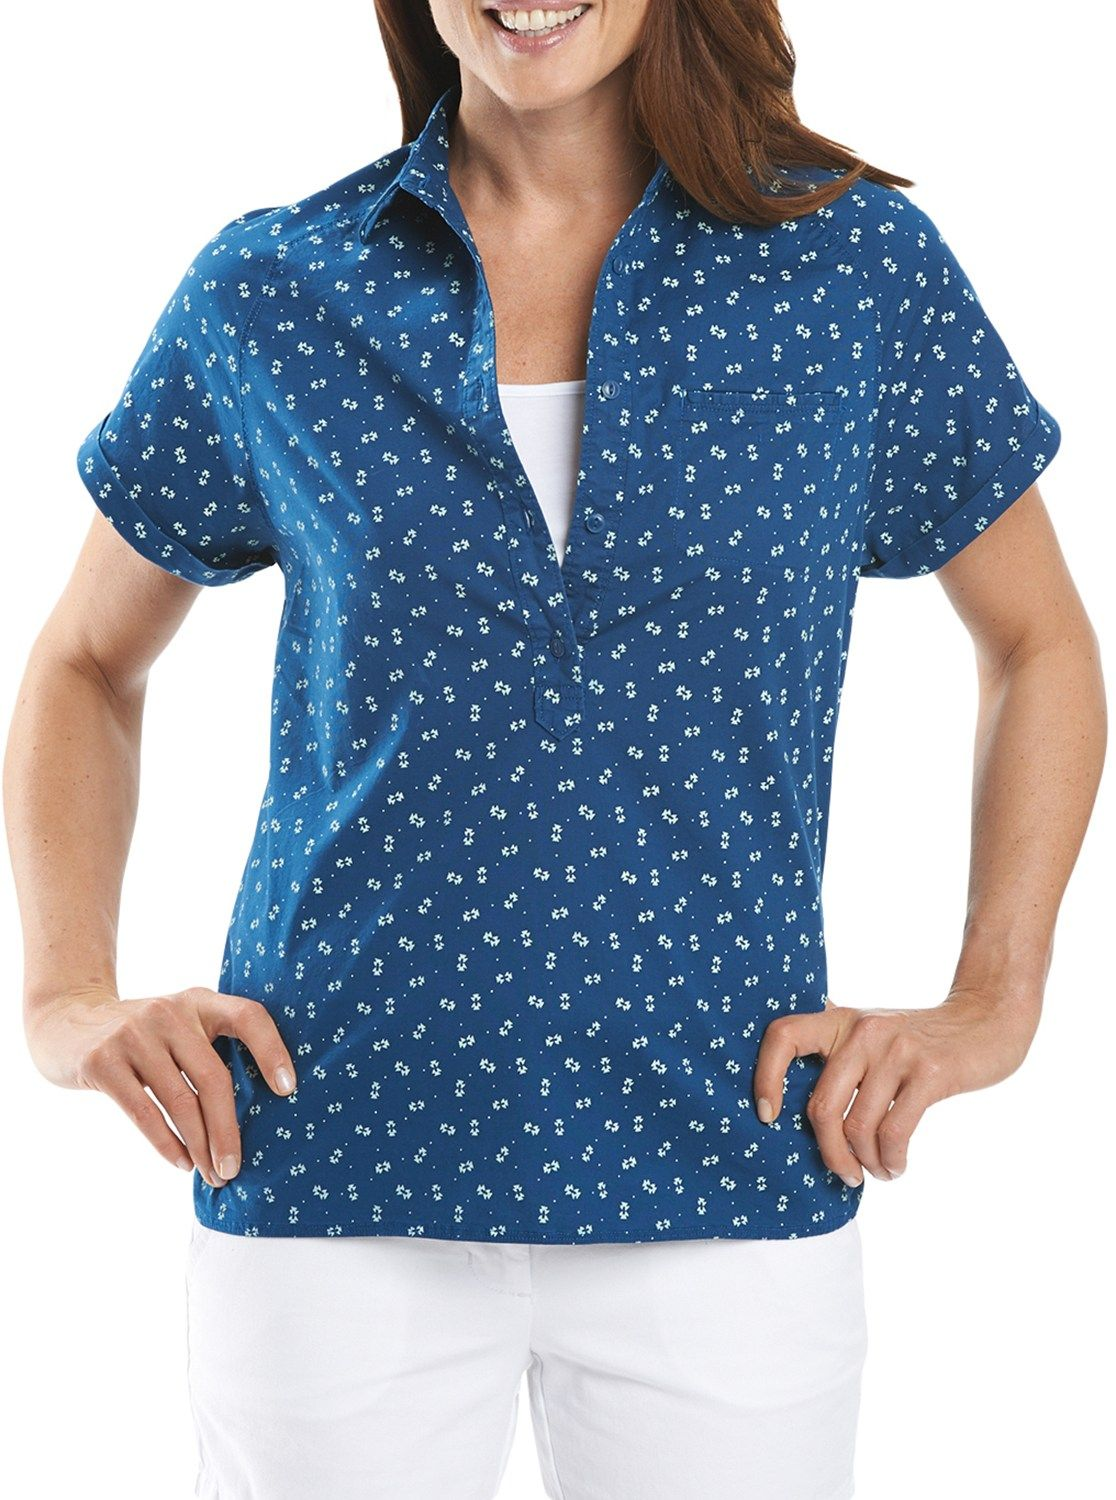 Woolrich Female Spoil Her Printed Popover - Women's